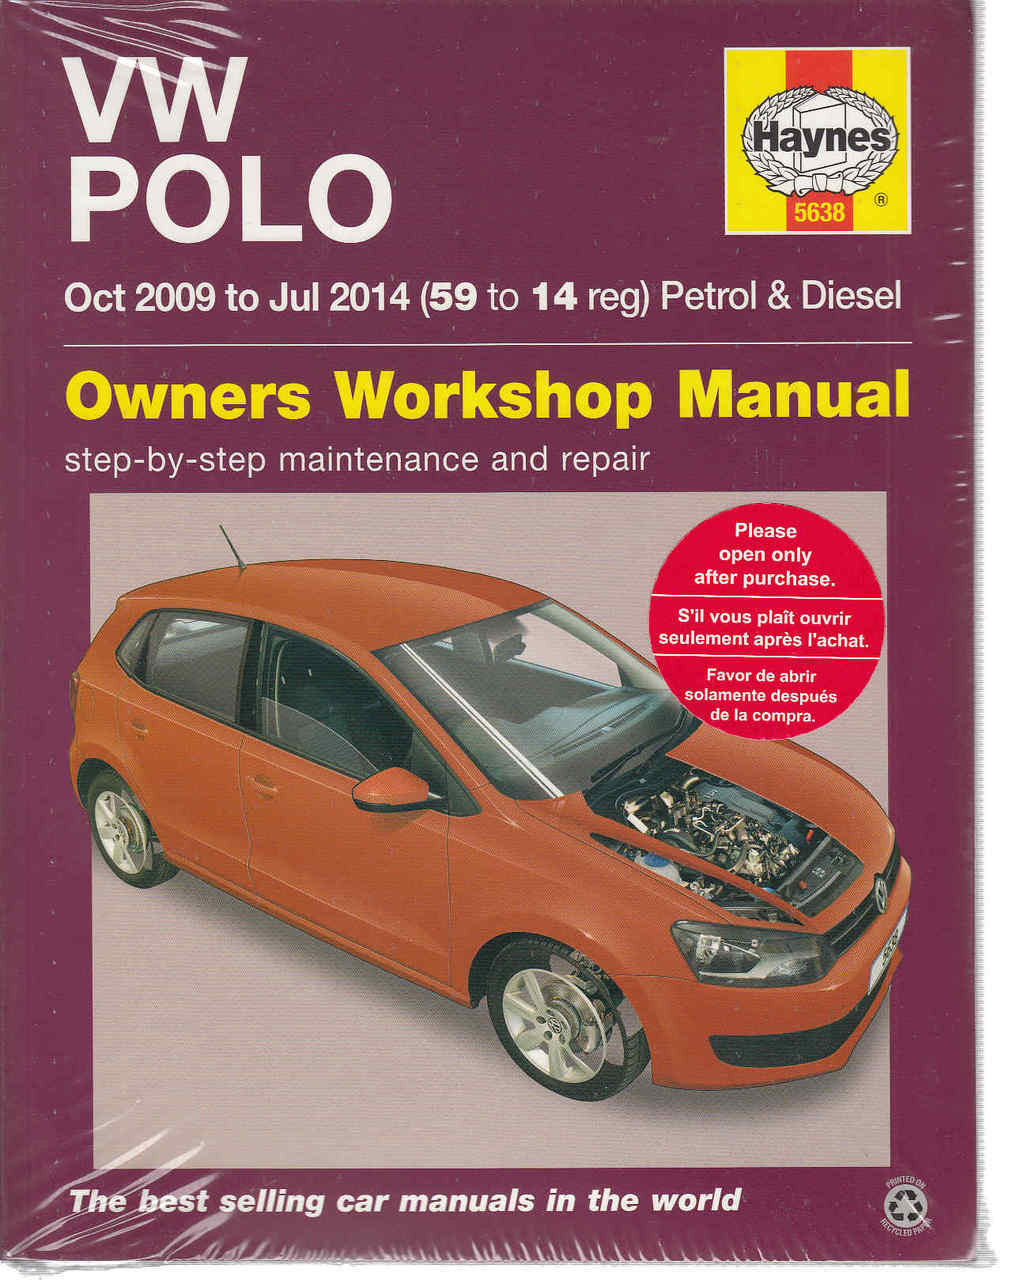 volkswagen polo 2009 2014 petrol diesel owners workshop manual rh automotobookshop com au VW Polo 1998 VW Polo 2000